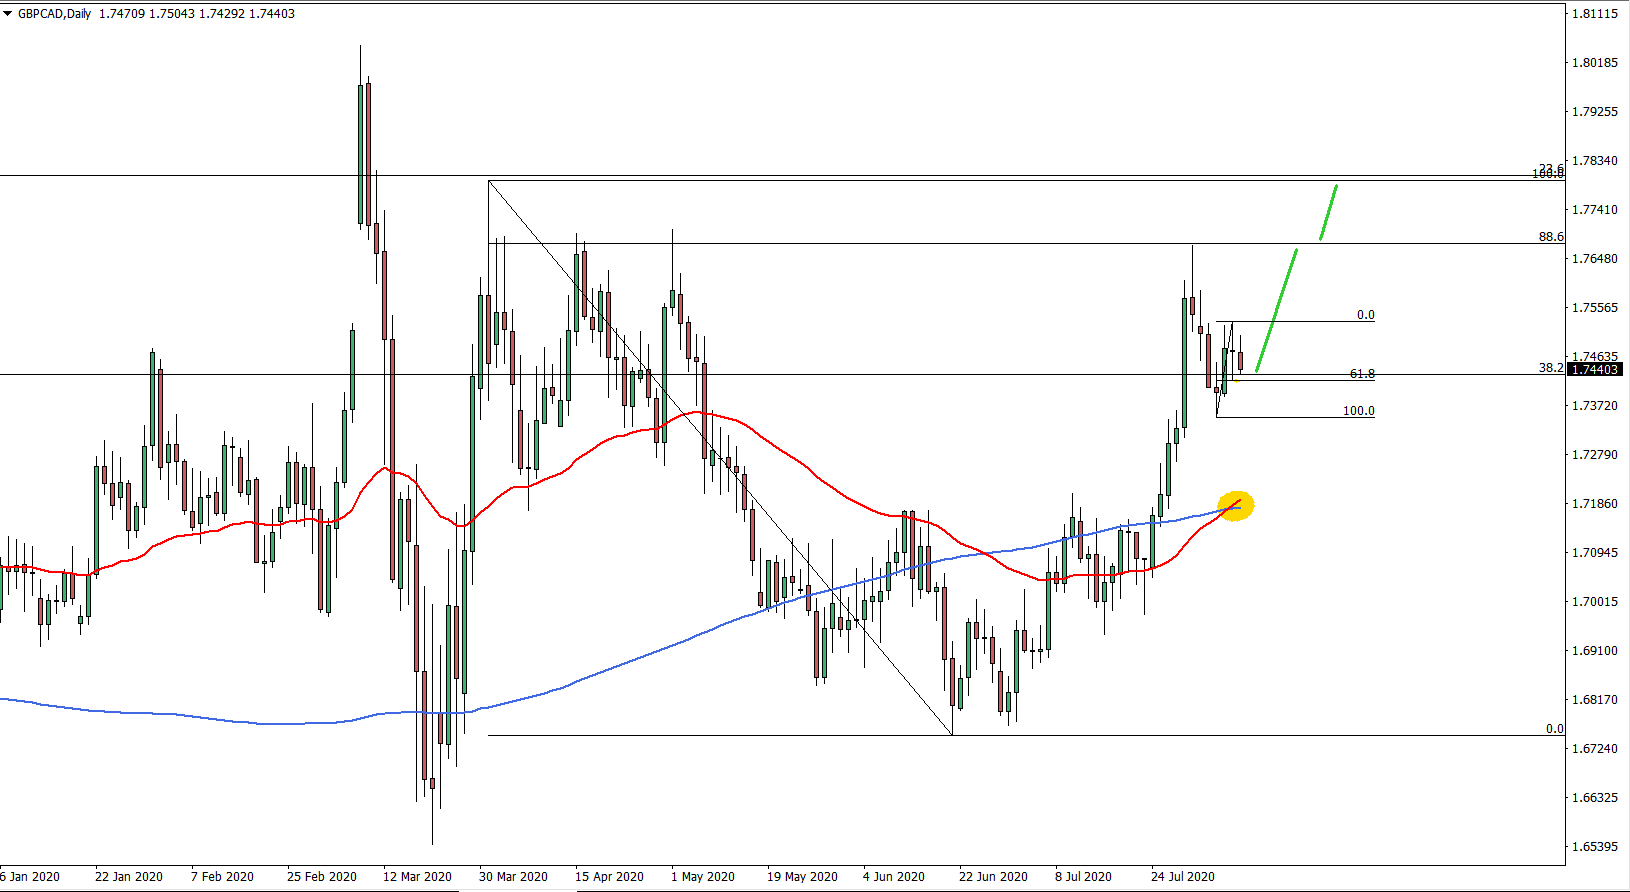 GBPCAD daily chart Aug 10 2020